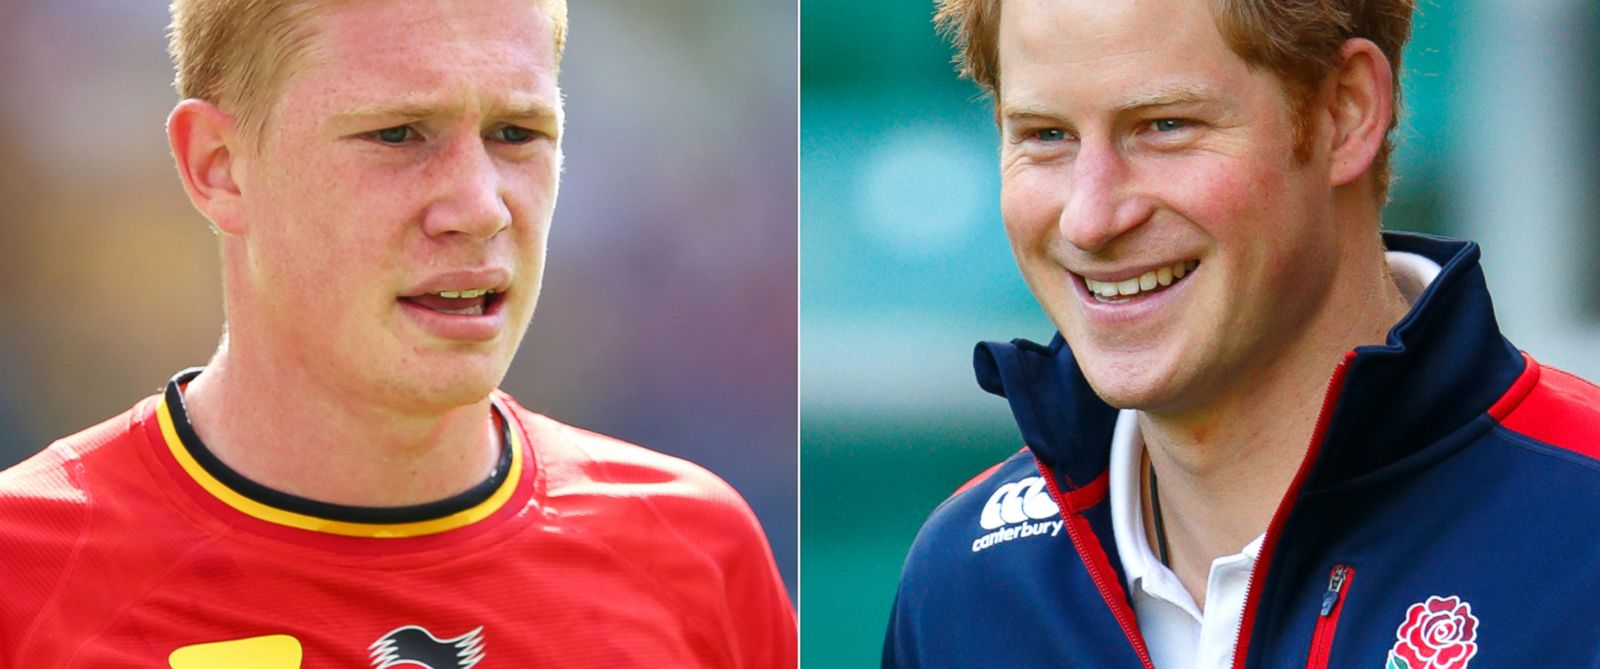 PHOTO: Kevin De Bruyne of Belgium in Rio de Janeiro, Brazil, June 22, 2014. | Prince Harry in London, Oct. 17, 2013.